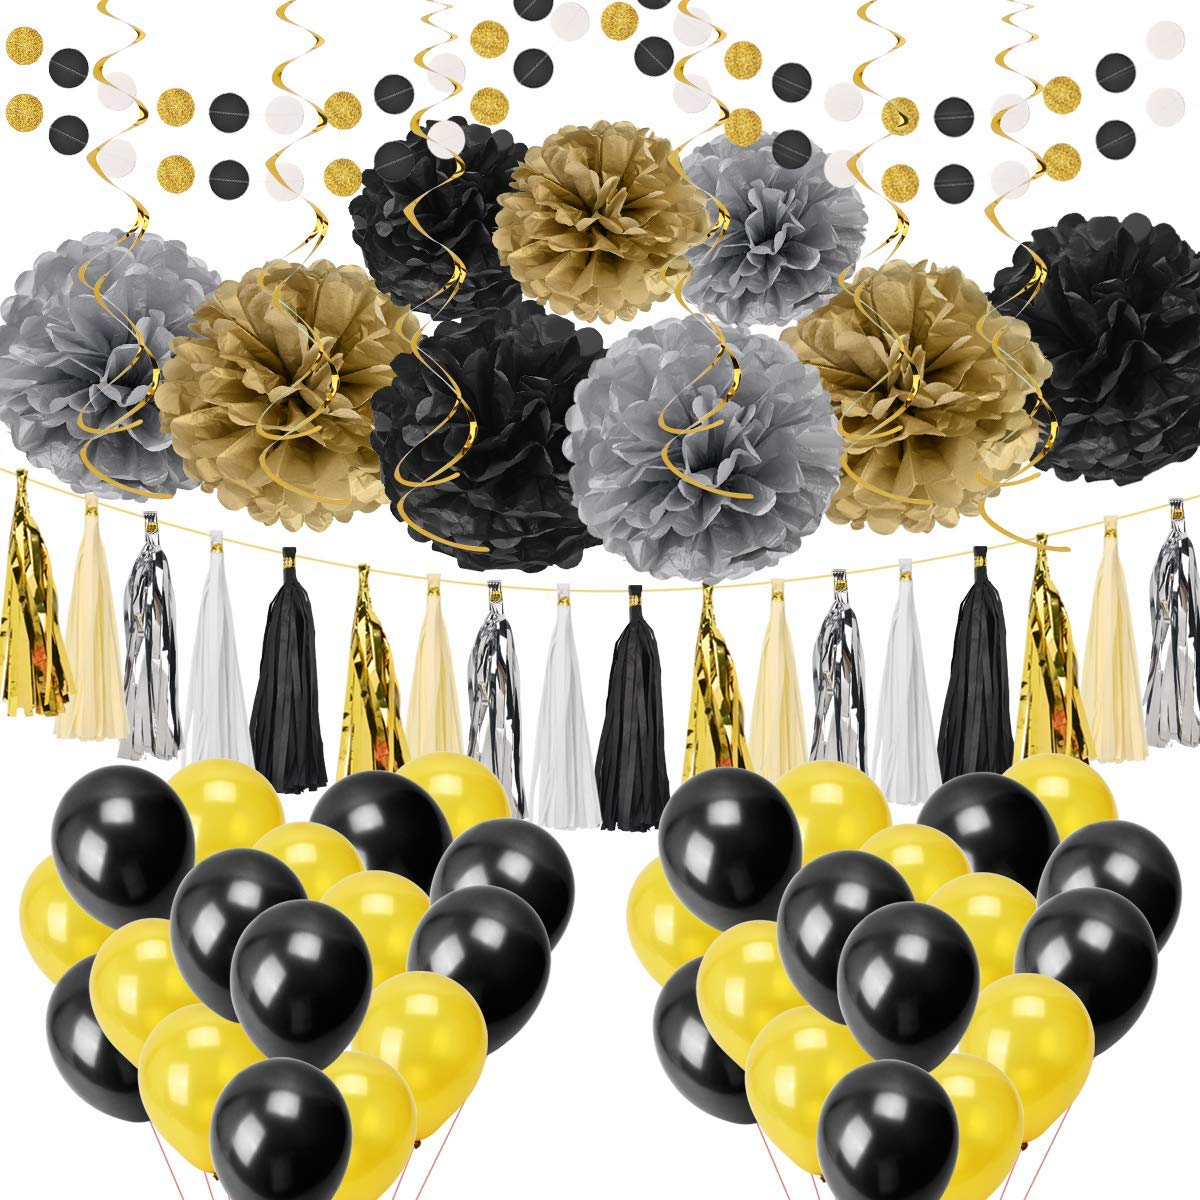 Artoper 62 pcs Party Decoration Set - Party Supplier Set of Balloons, Pom Poms Flowers, Paper Garland, Tassels, Hanging Swirl Perfect for Boy Birthday, Baby Shower, Silver Gold Black